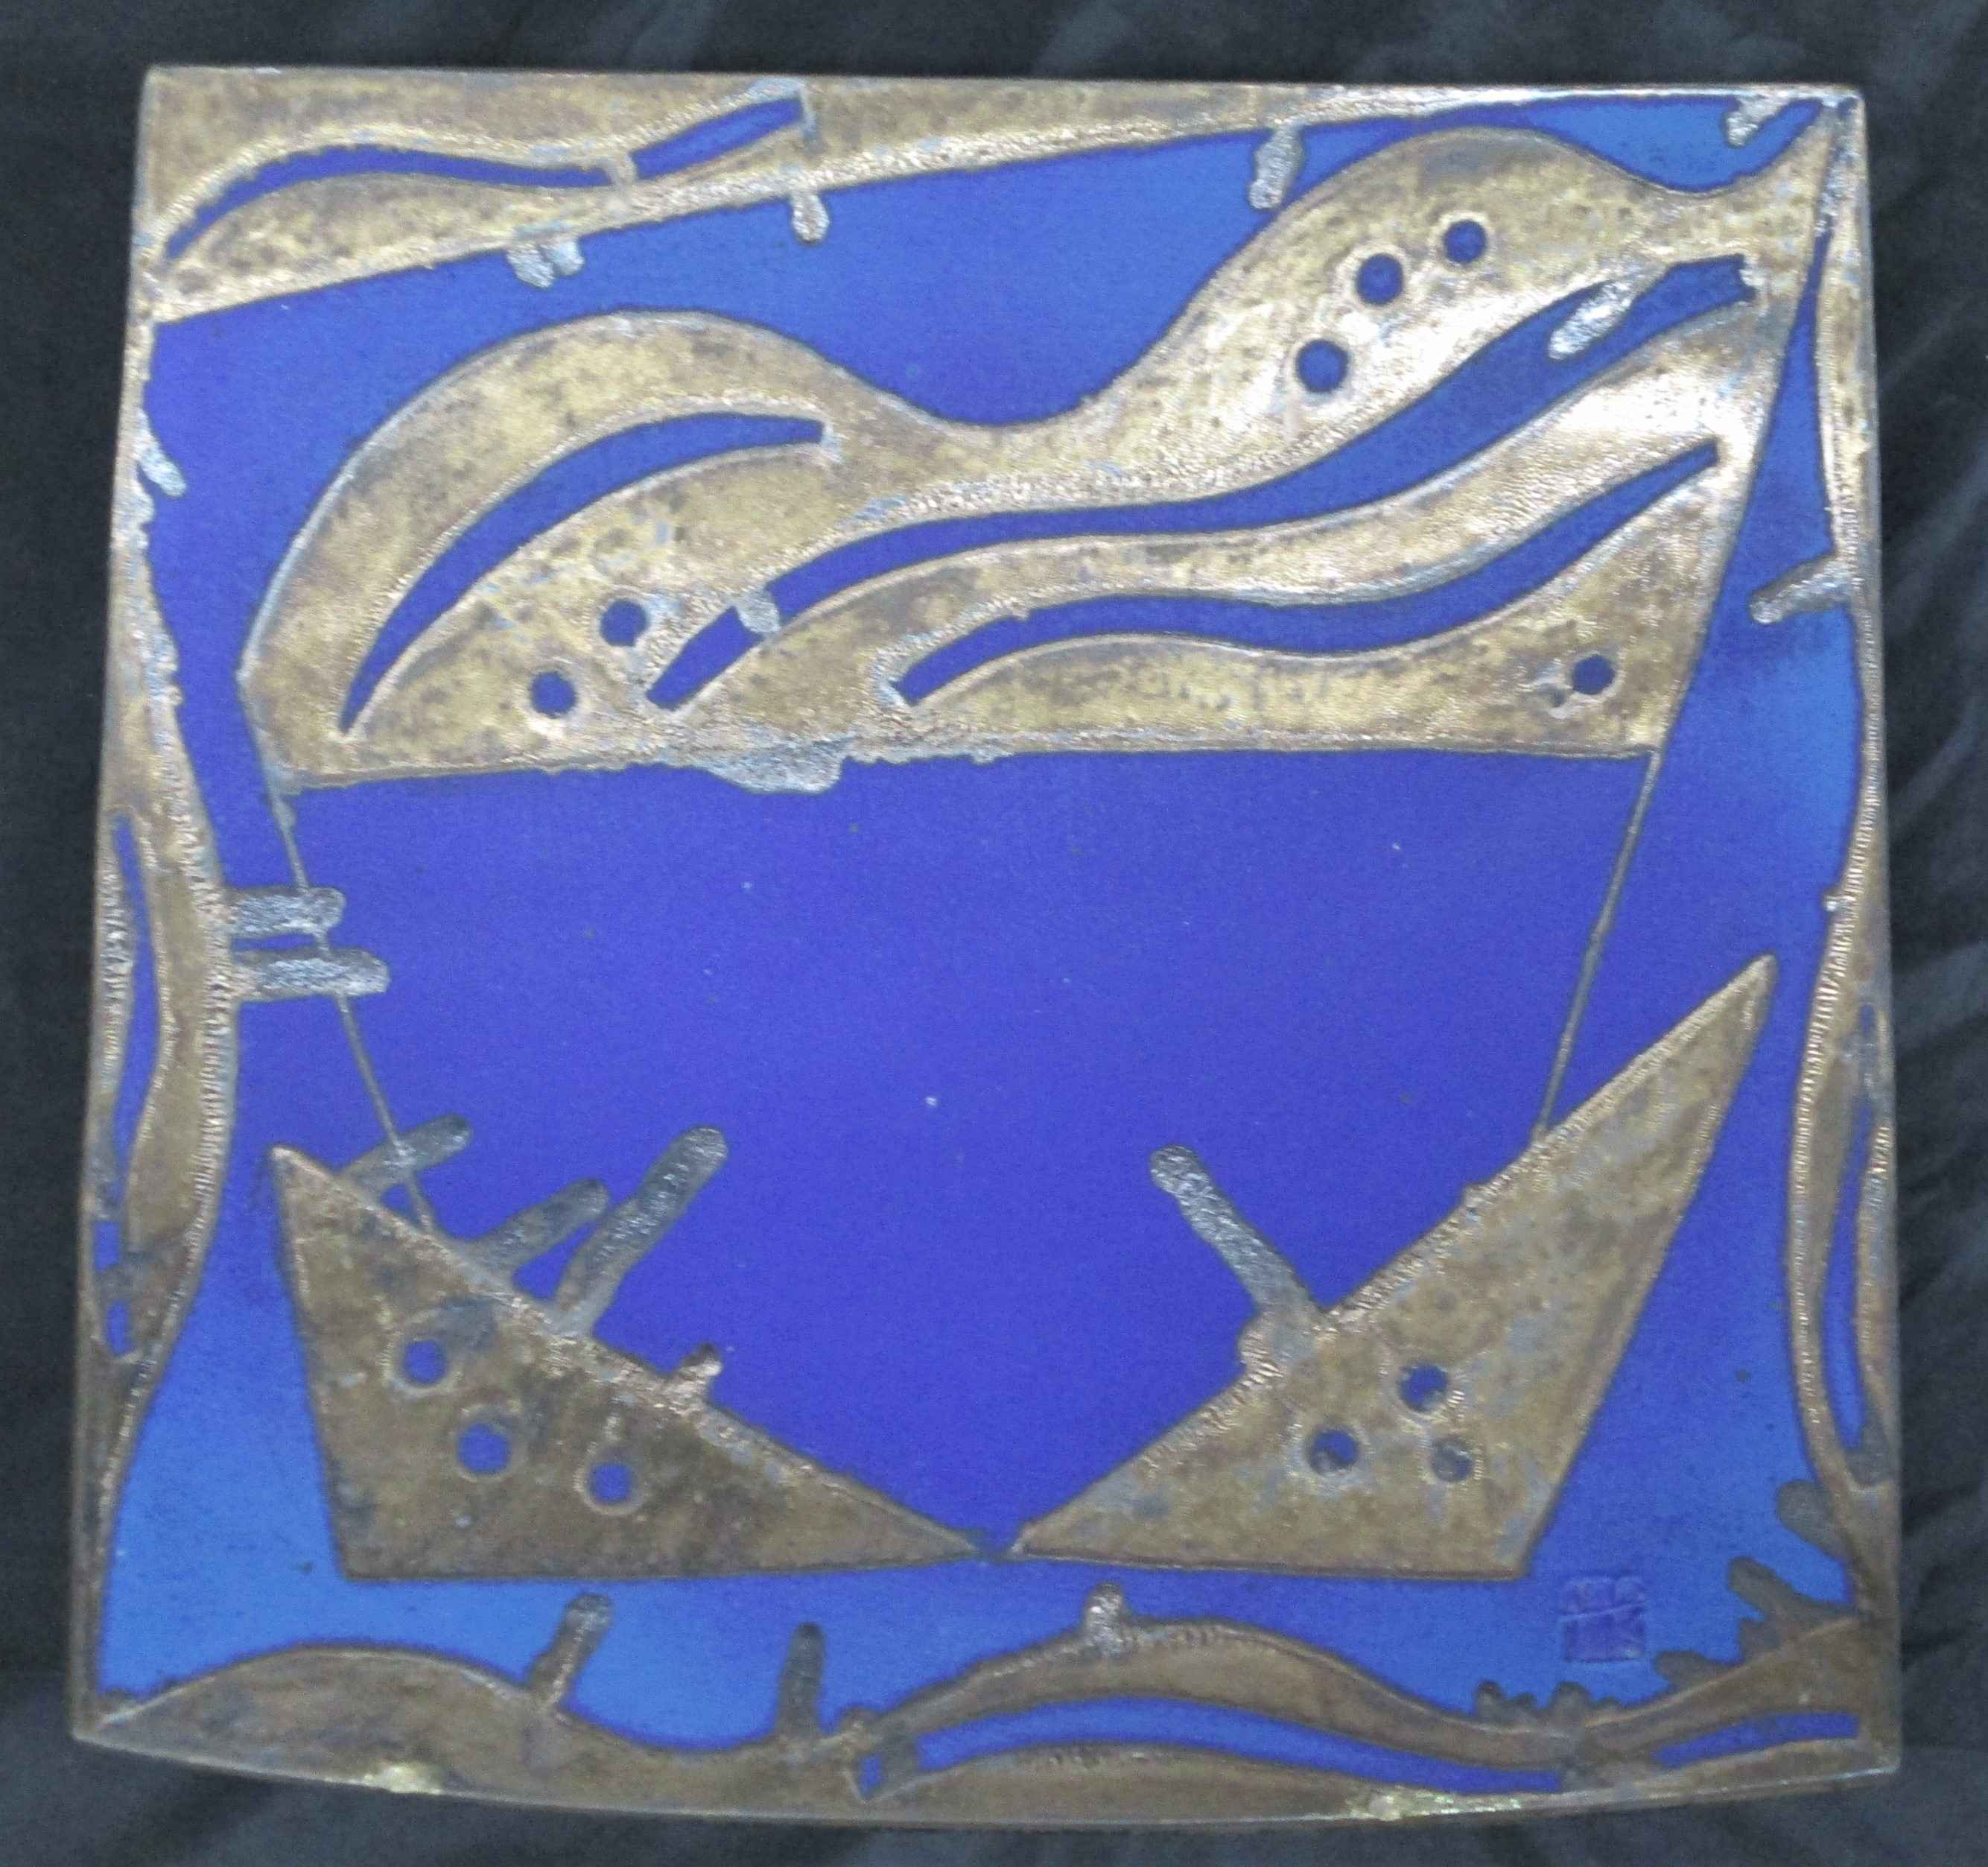 Unknown (Blue platter) by  Patrick Horsley - Masterpiece Online